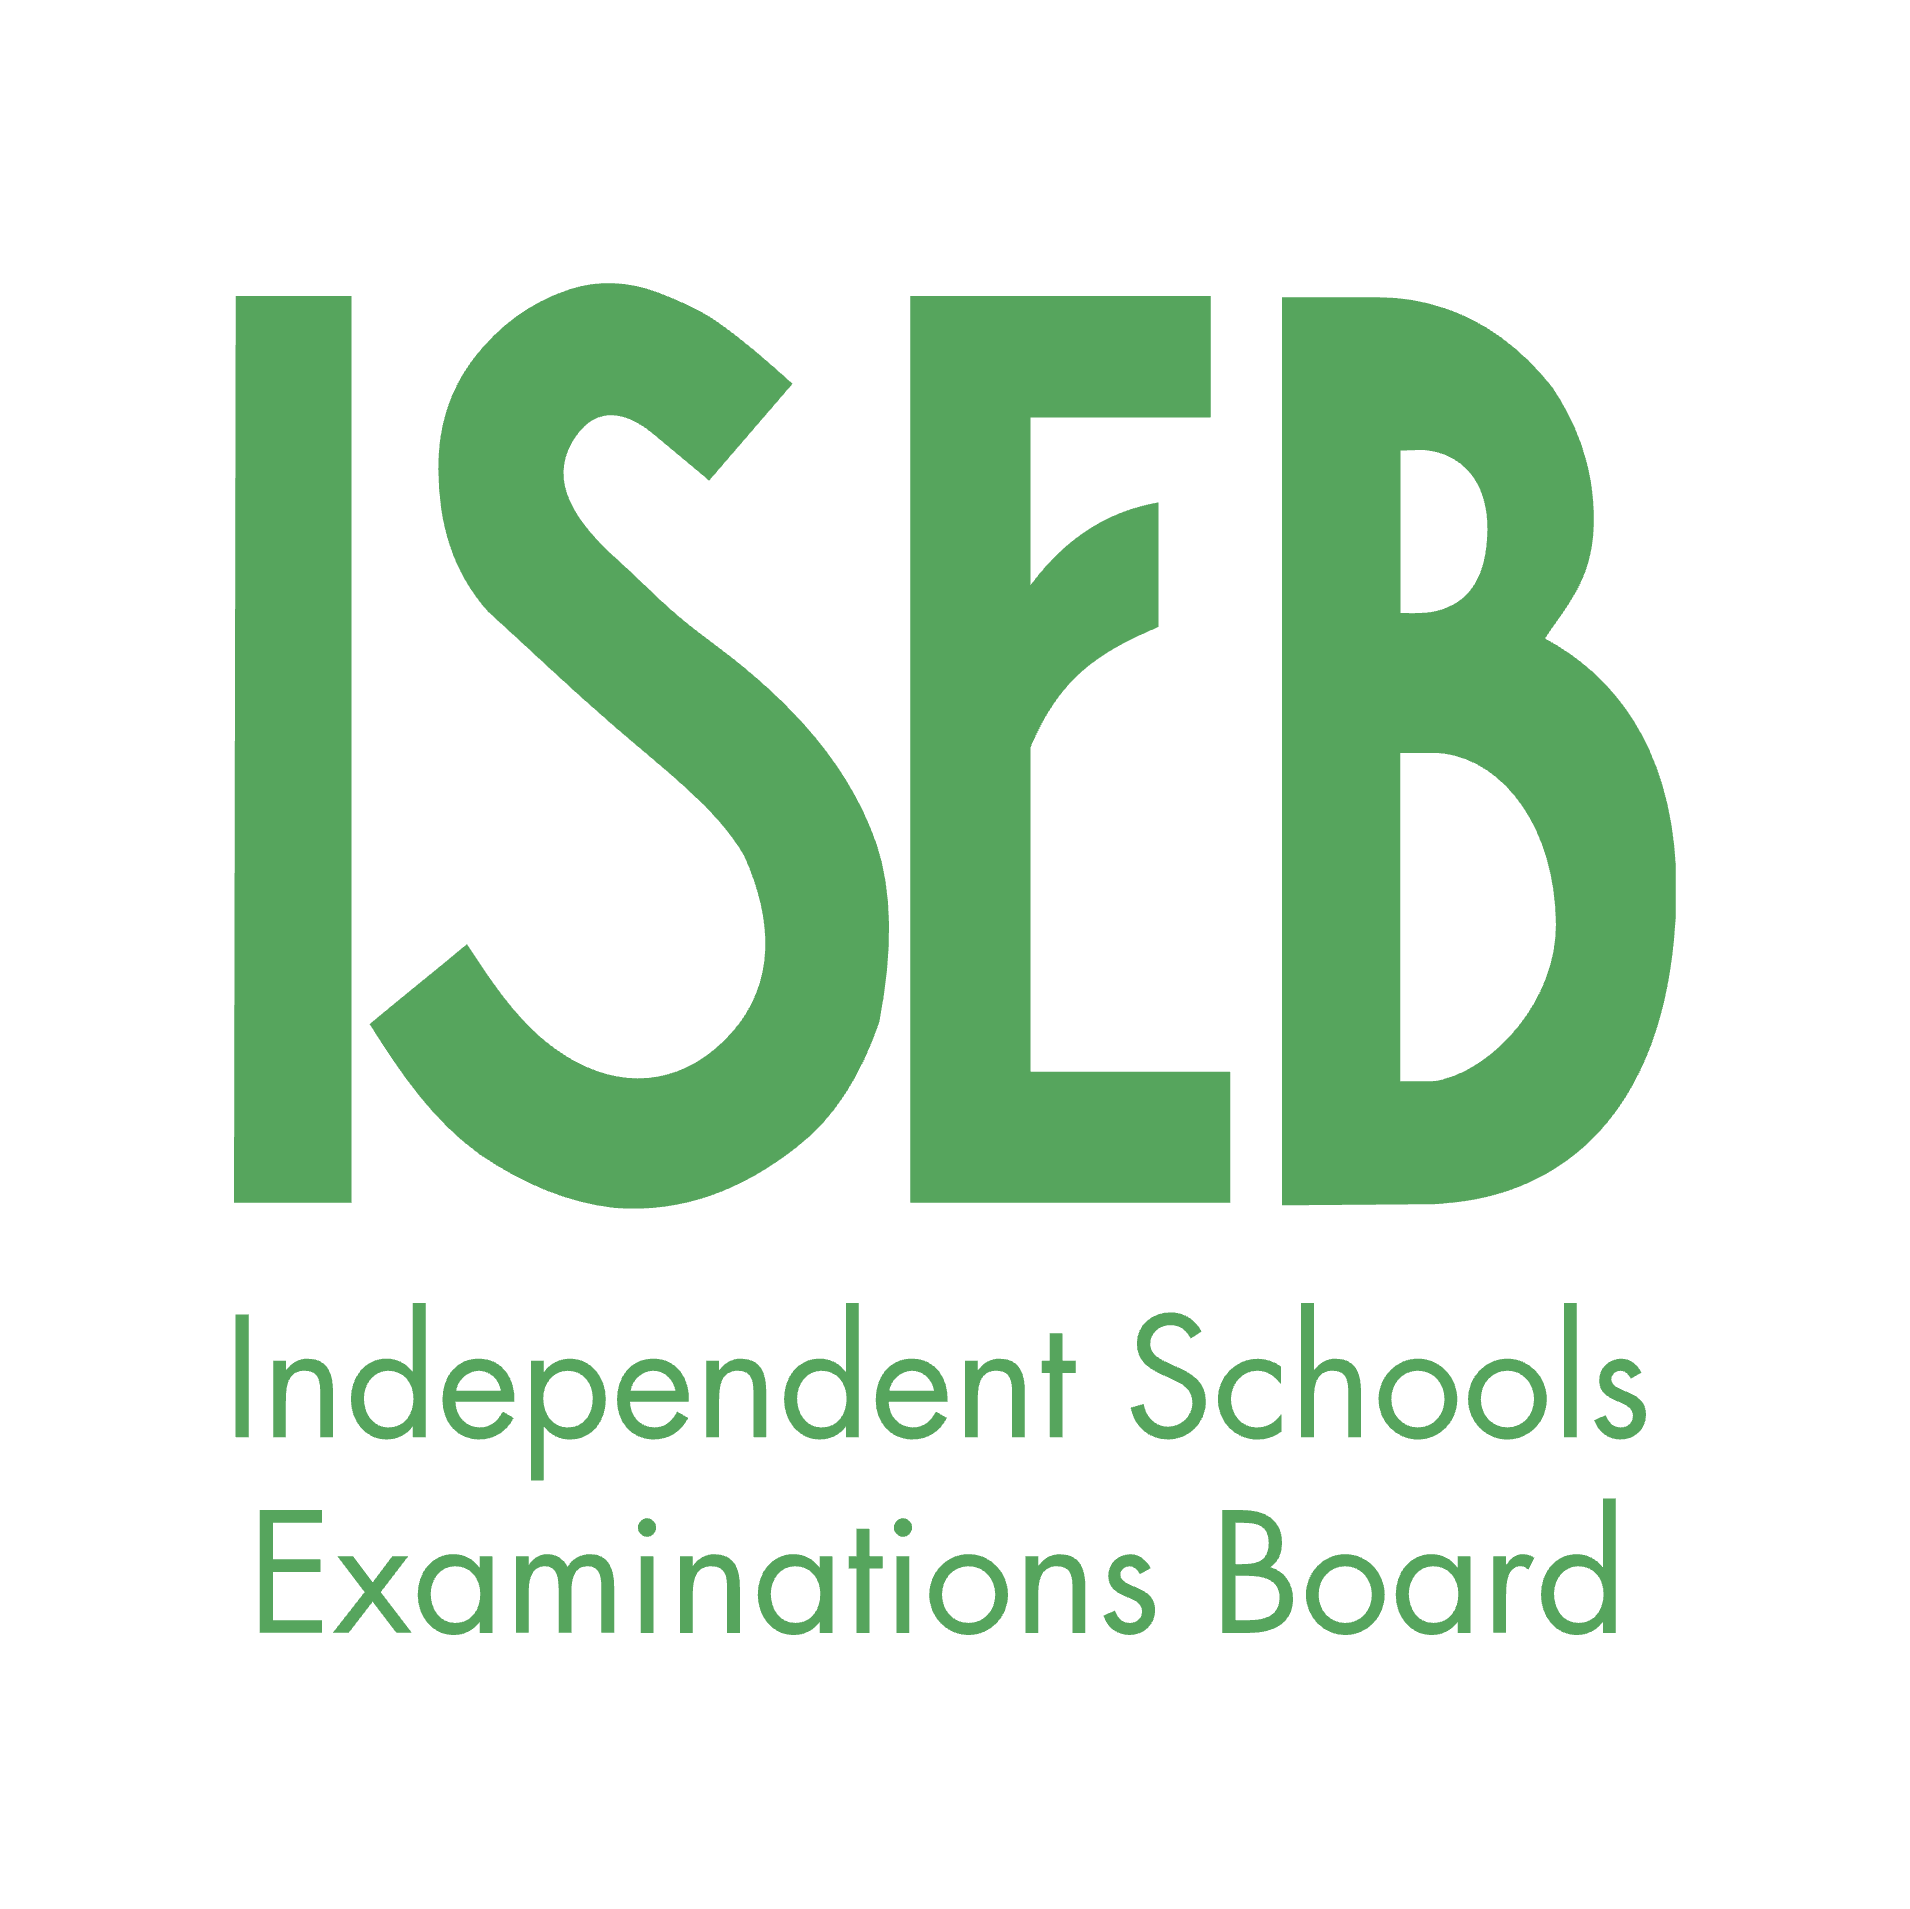 Supporting assessment authoring, quality assurance and test publishing with the Independent Schools Examination Board